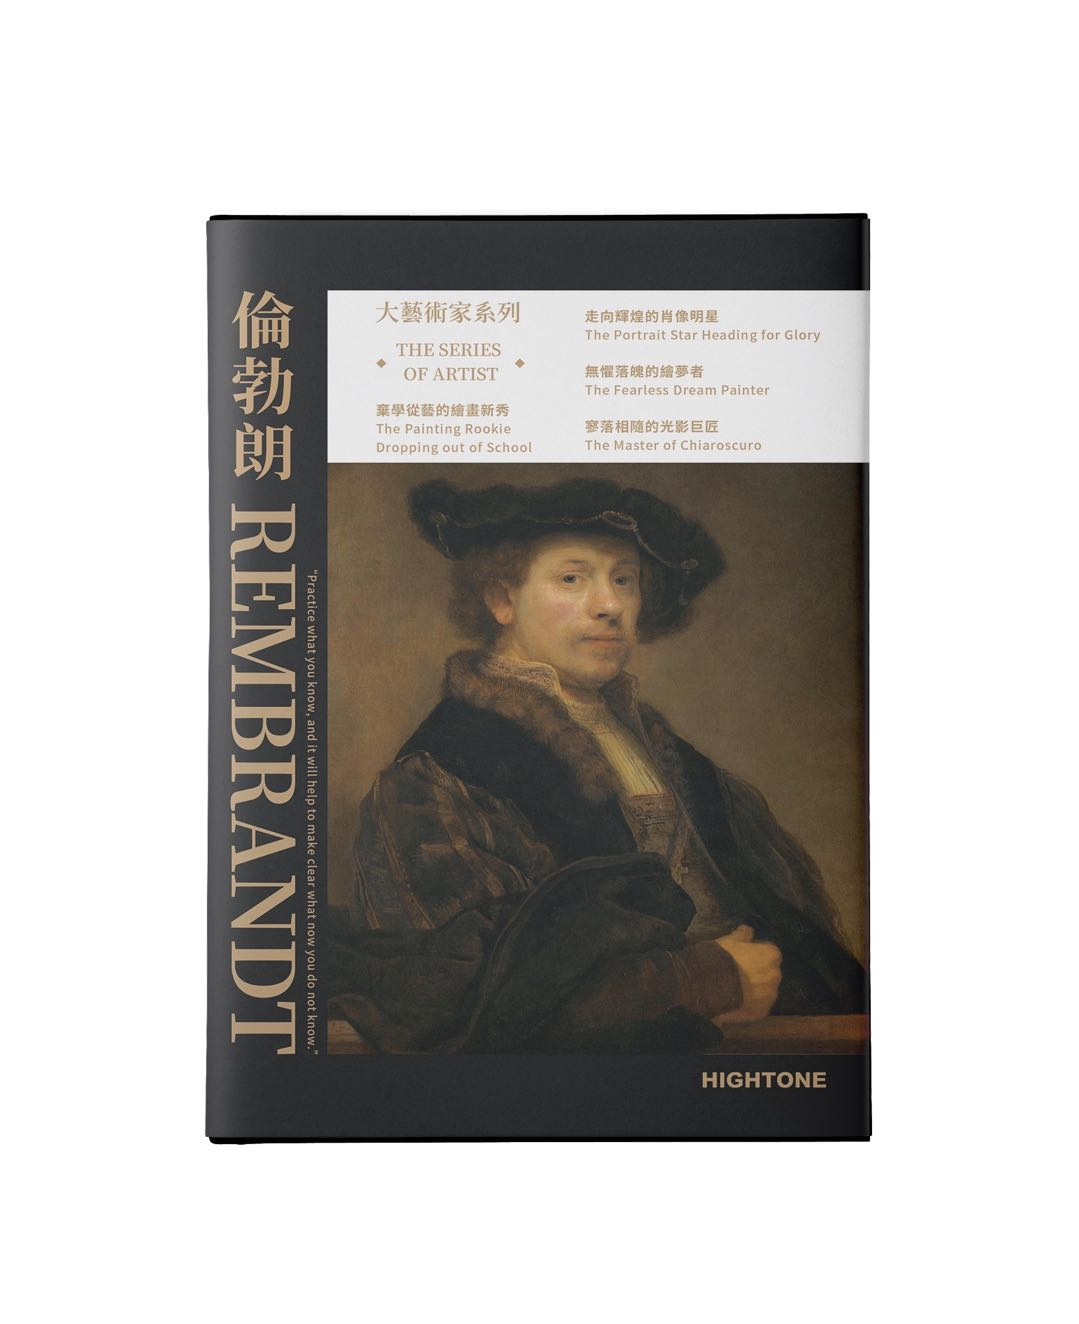 The Series of Artist: REMBRANDT